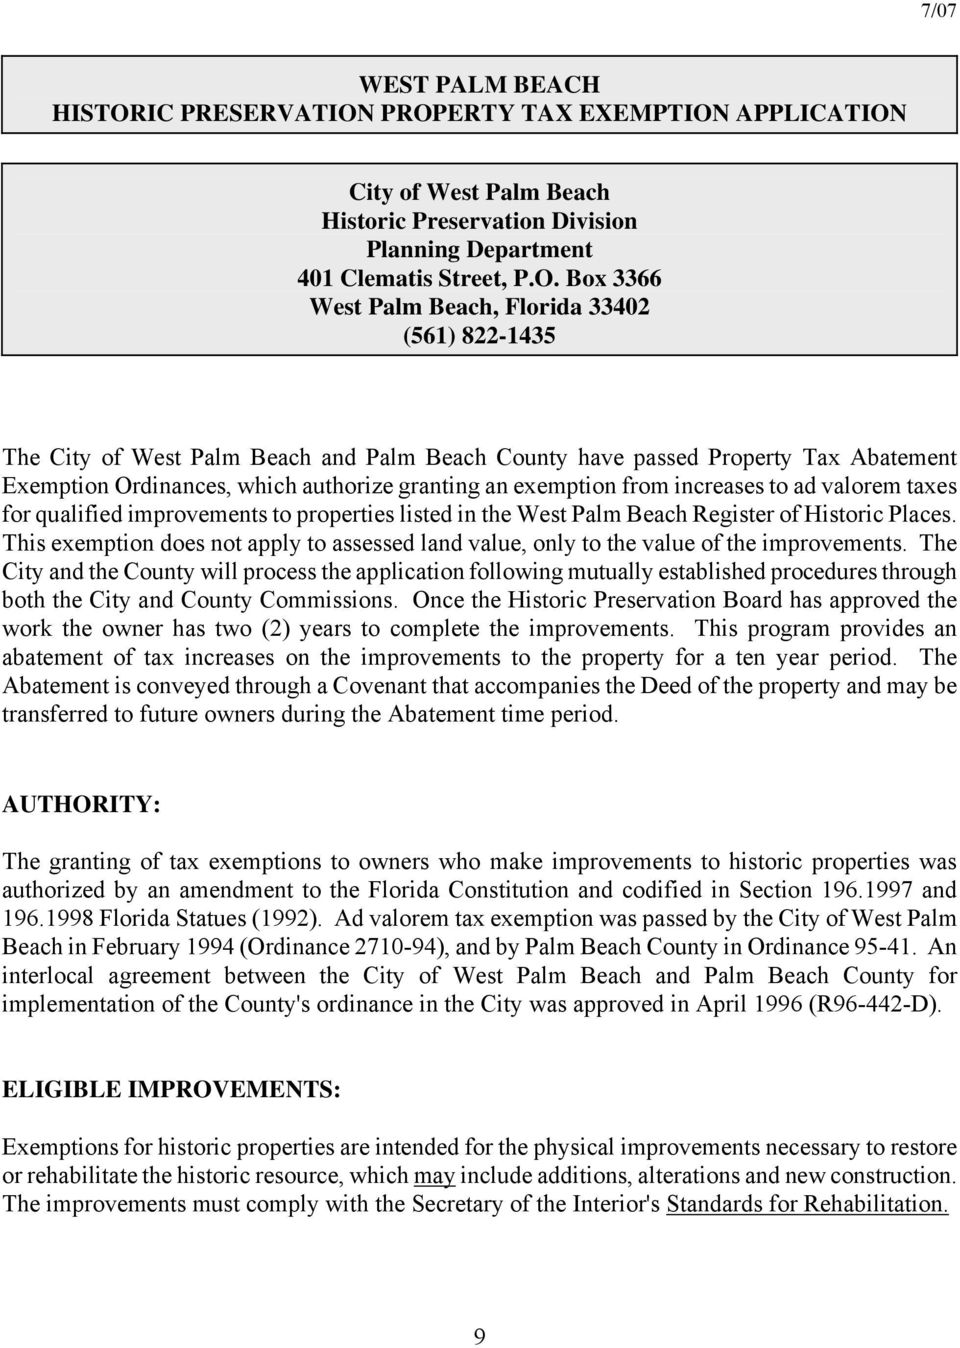 PROPERTY TAX EXEMPTION APPLICATION City of West Palm Beach Historic Preservation Division Planning Department 401 Clematis Street, P.O. Box 3366 West Palm Beach, Florida 33402 (561) 822-1435 The City